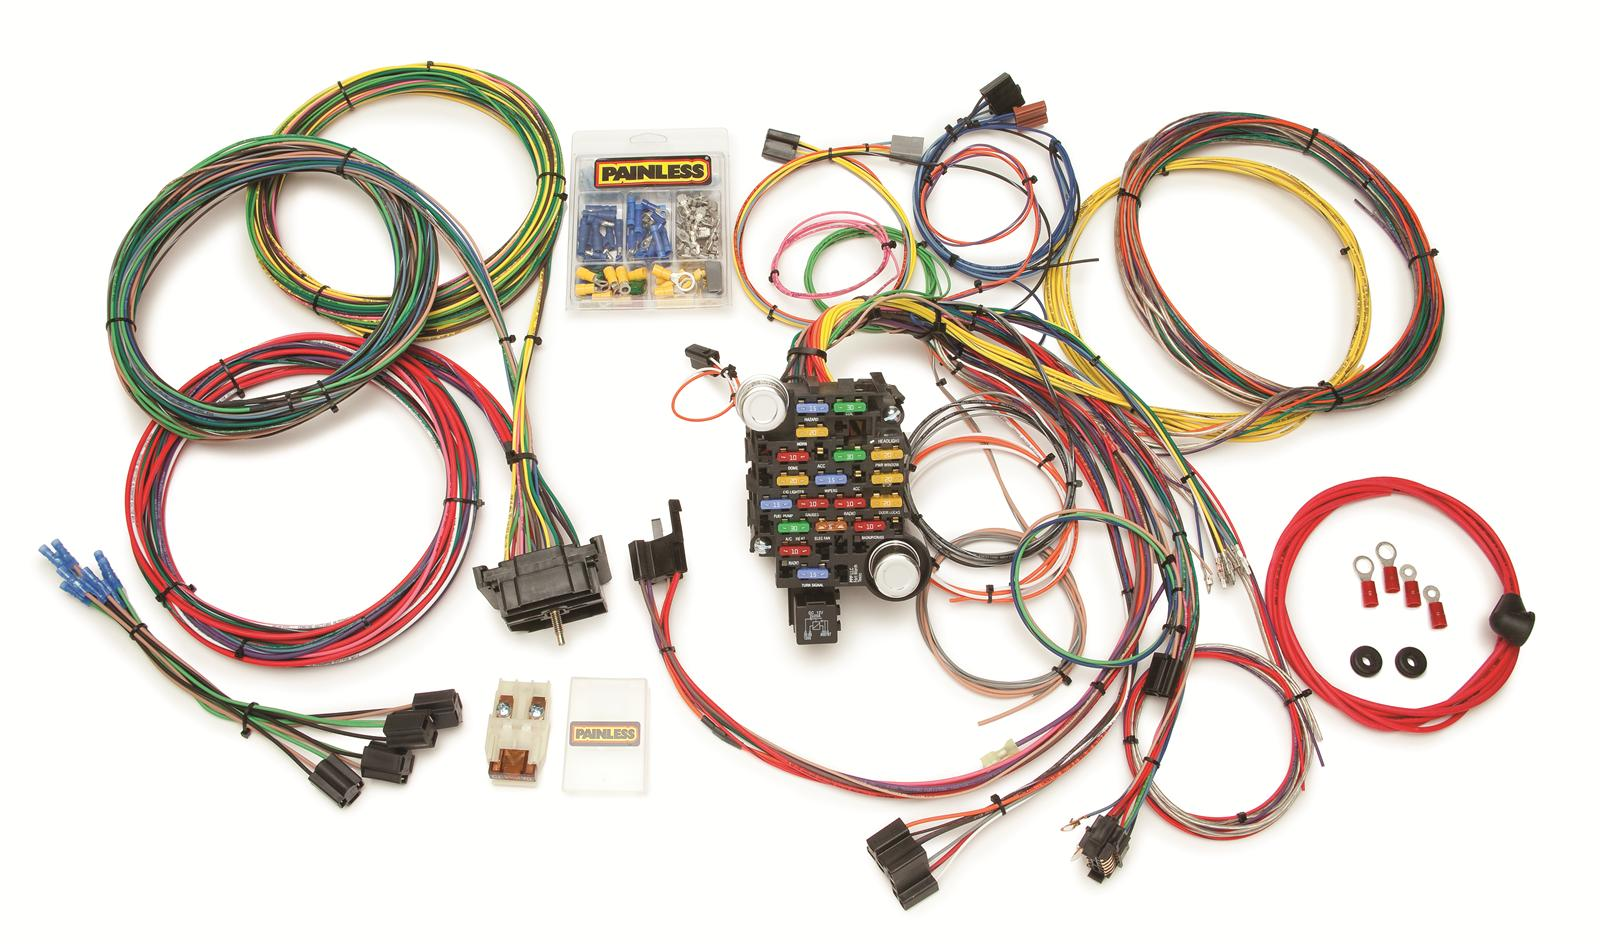 prf 10206_xl painless performance gmc chevy truck harnesses 10206 free electrical wiring harness at webbmarketing.co